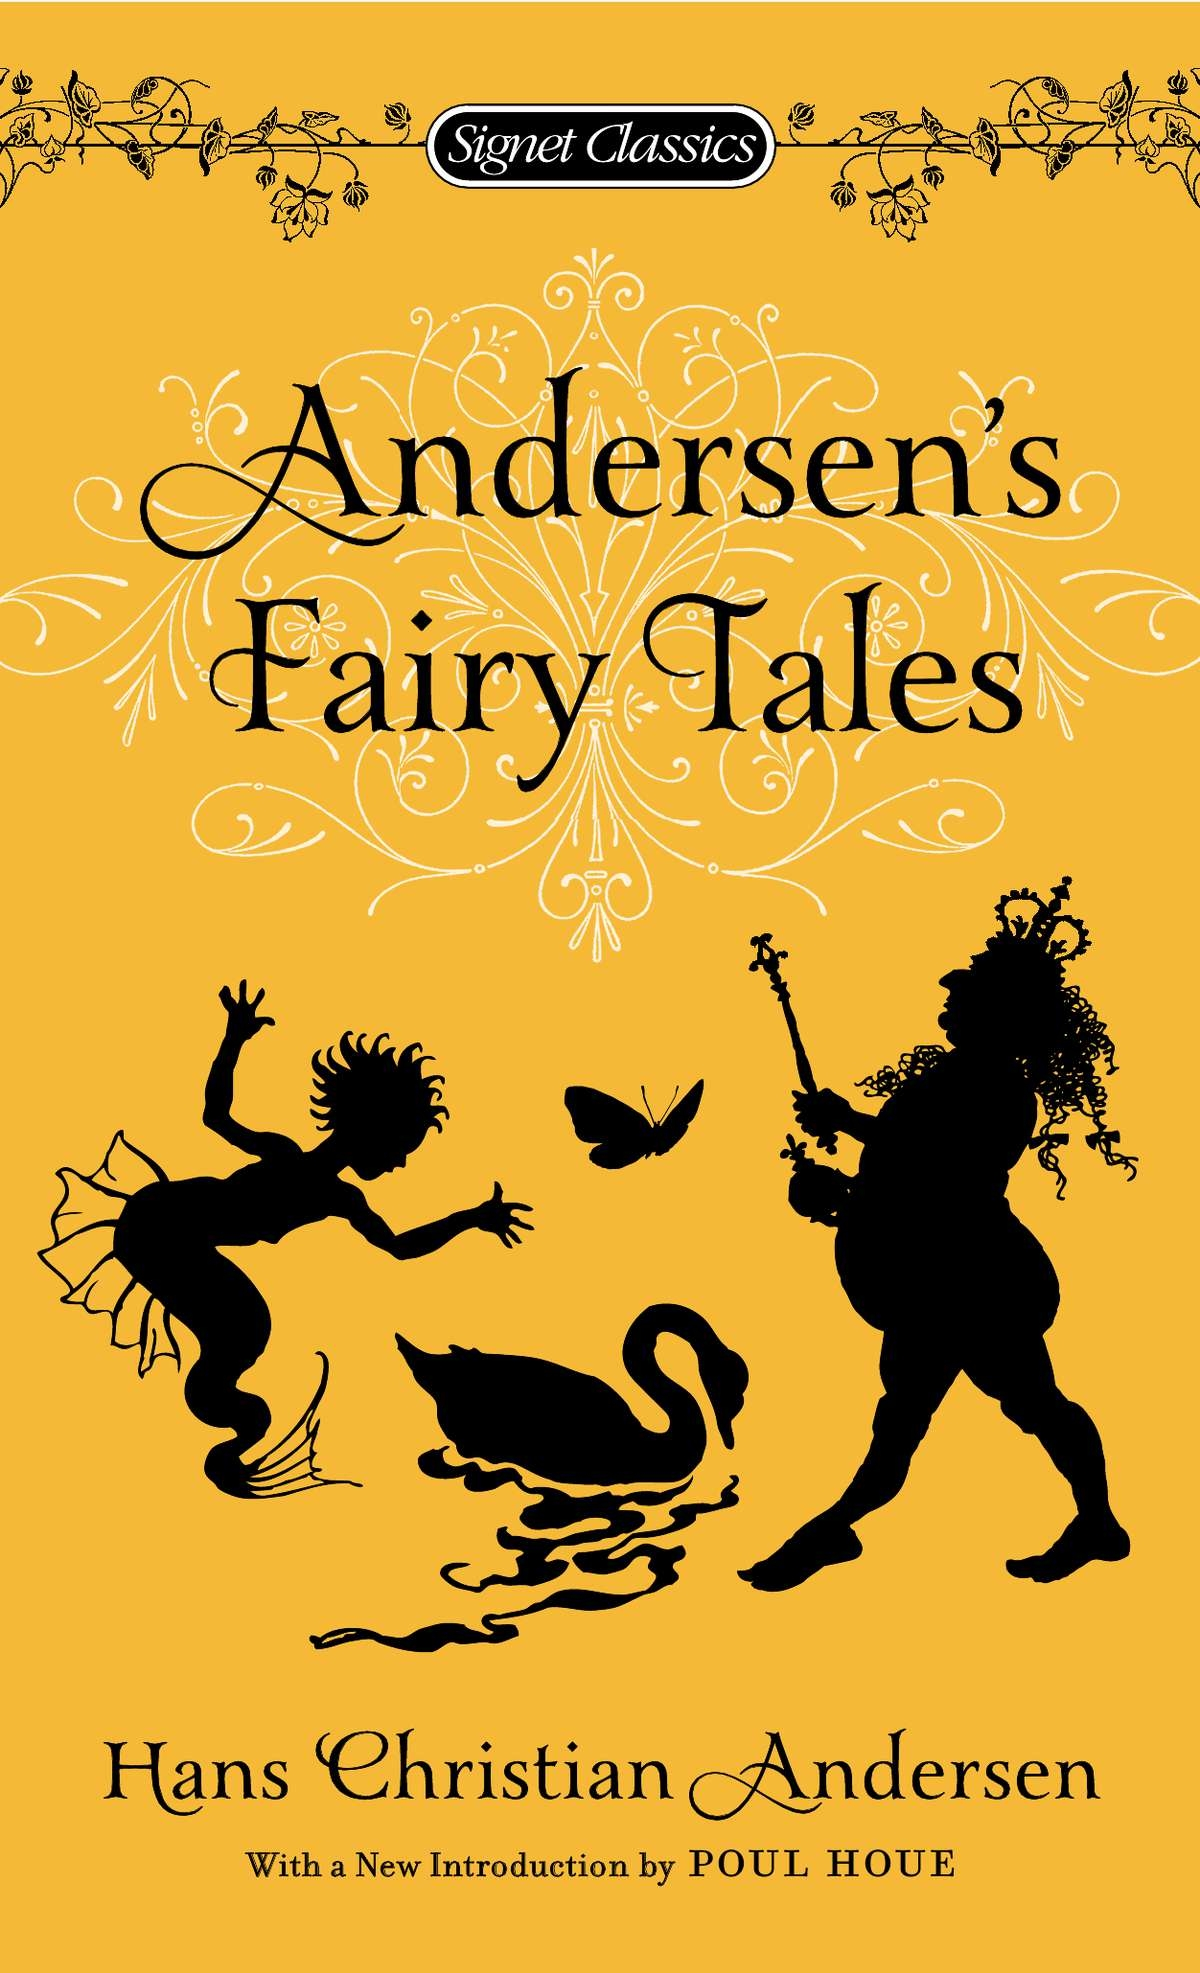 a review of hans christian andersens fairy tales Andersen's fairy tales has 547 ratings and 53 reviews mike (the paladin) said:  there are some good stories here, and some that scarred my childhood bet.